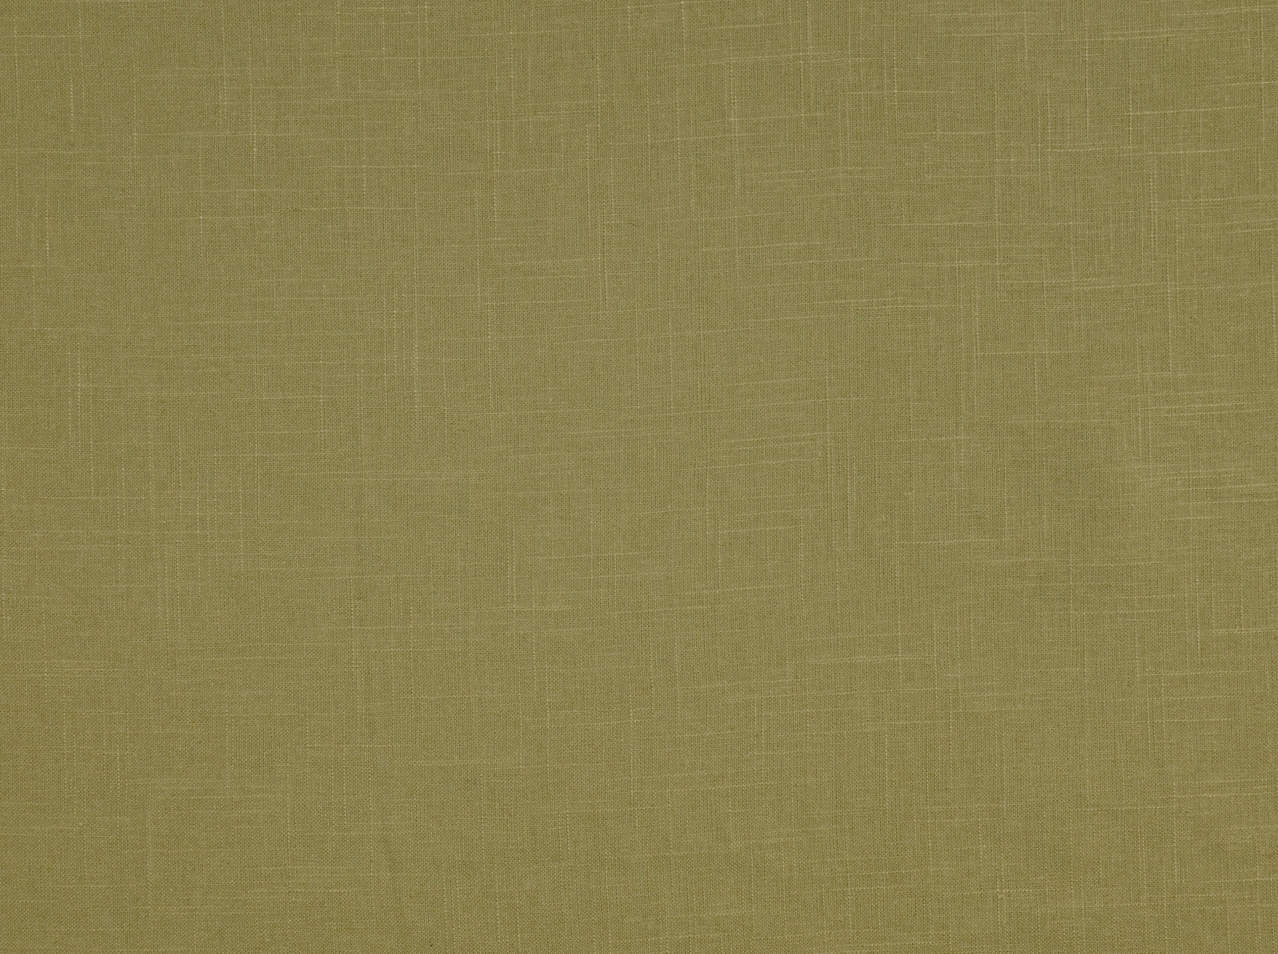 Covington Jefferson Linen 27 Celadon Green Linen 1502